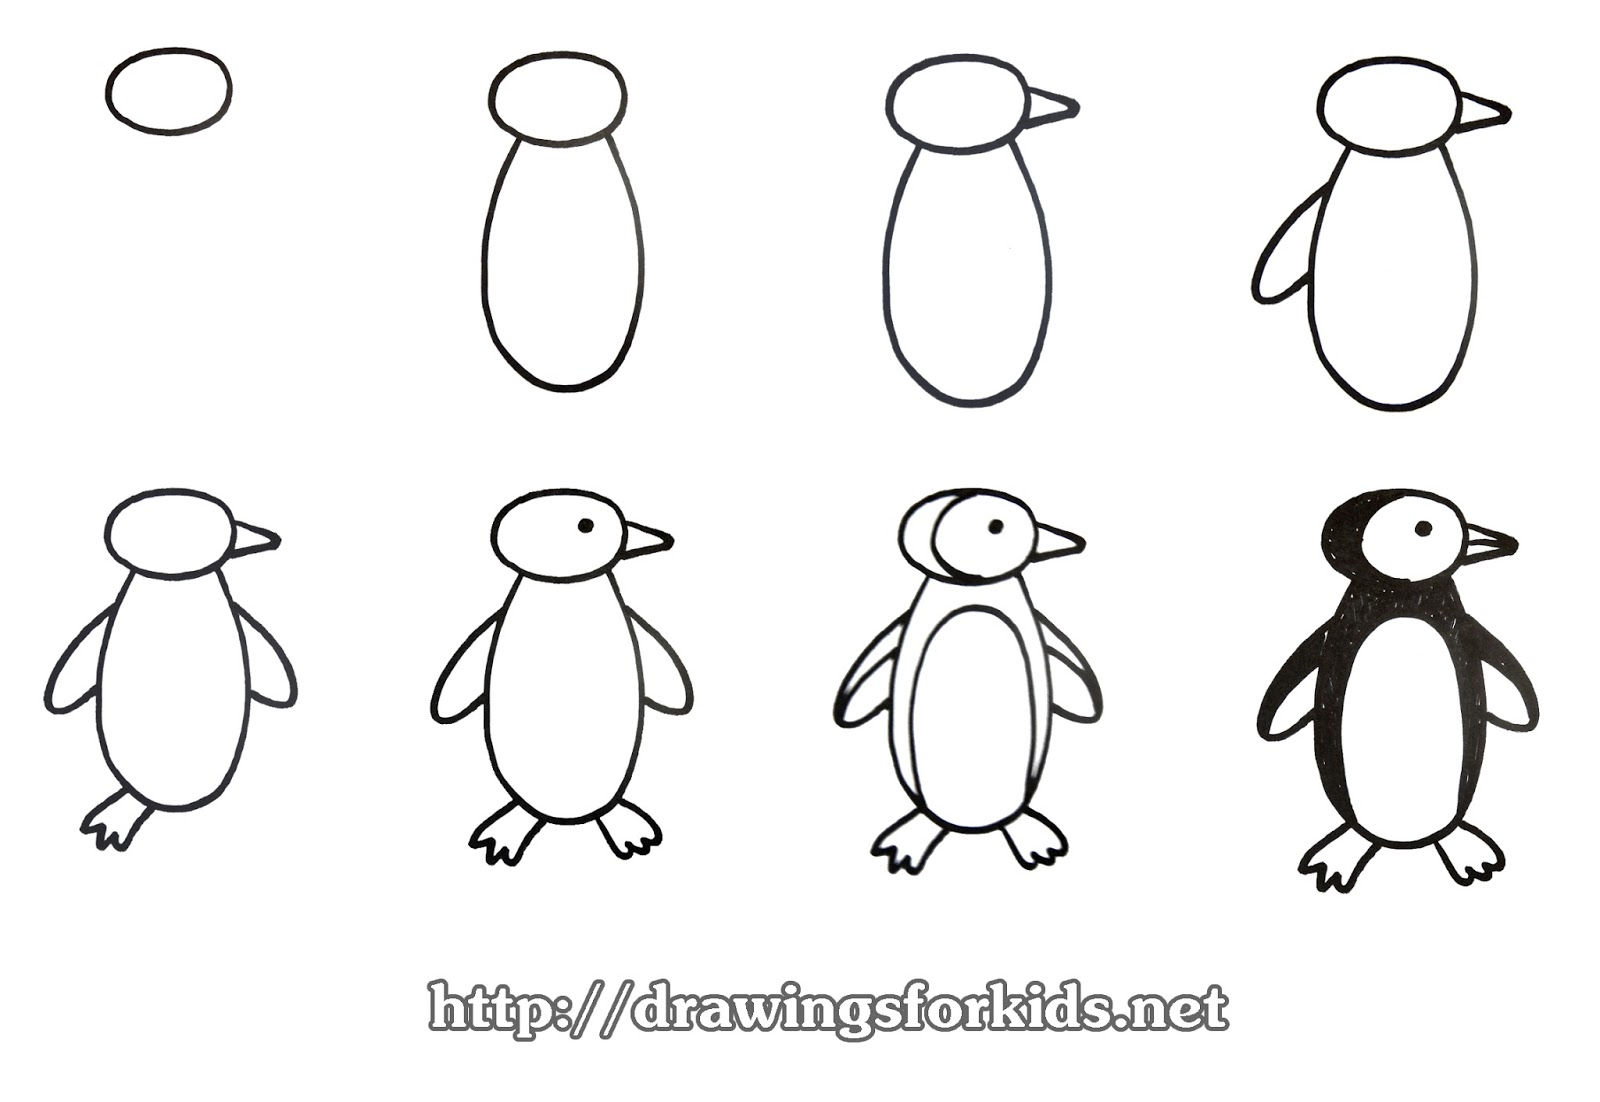 How to draw a Penguins for kids - drawingsforkids.net